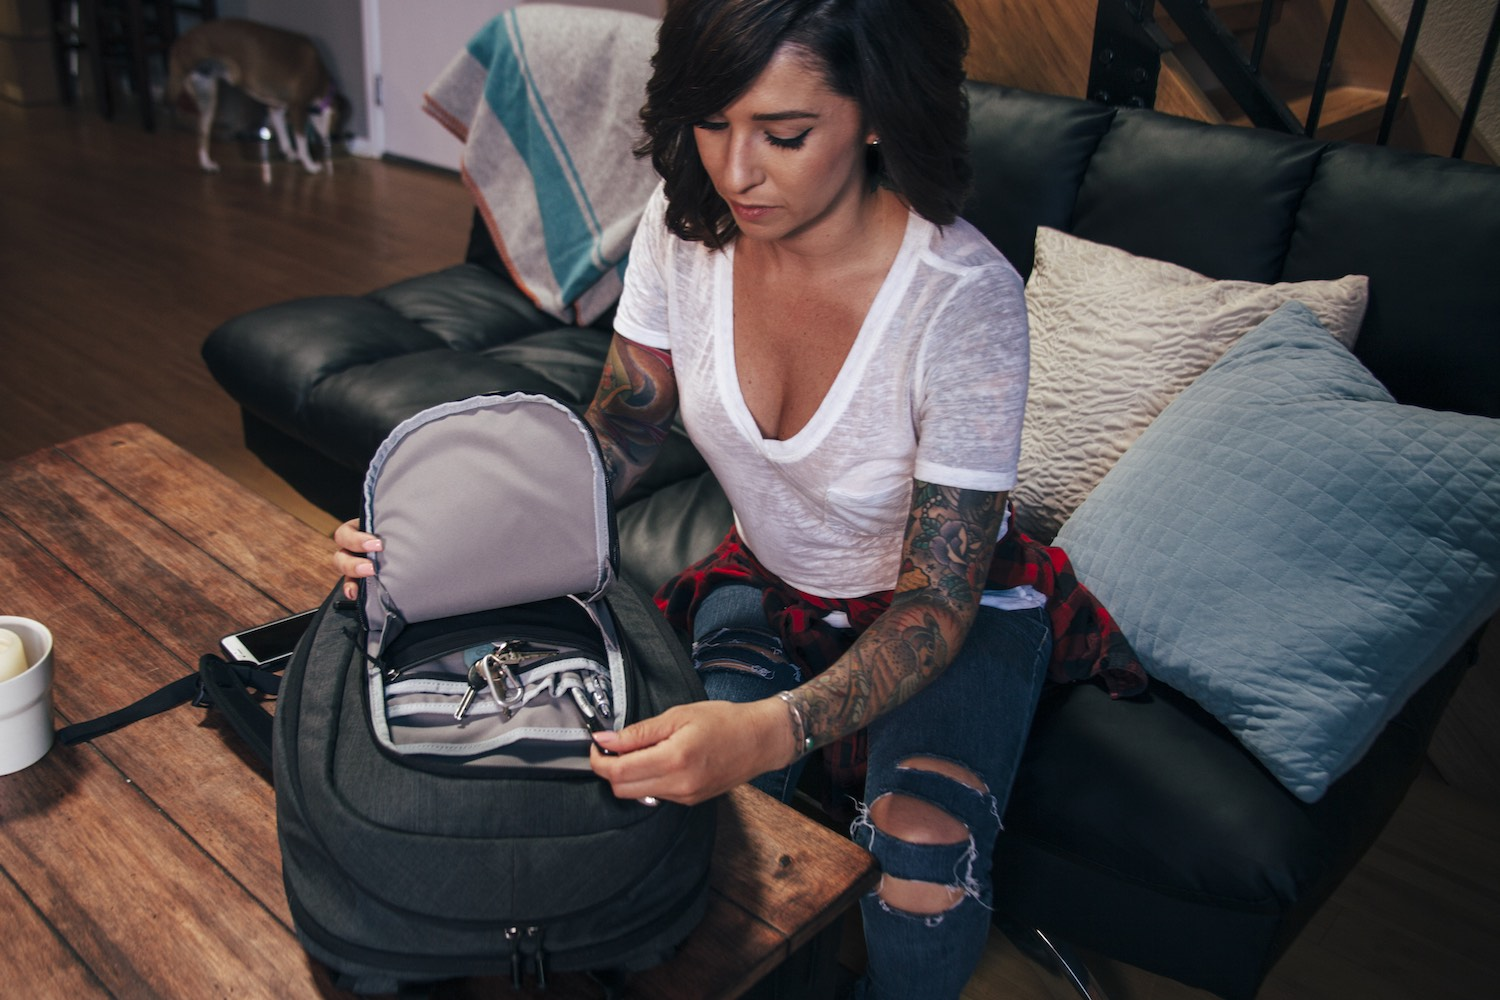 The Colfax Travel Smart Pack by CO.ALITION